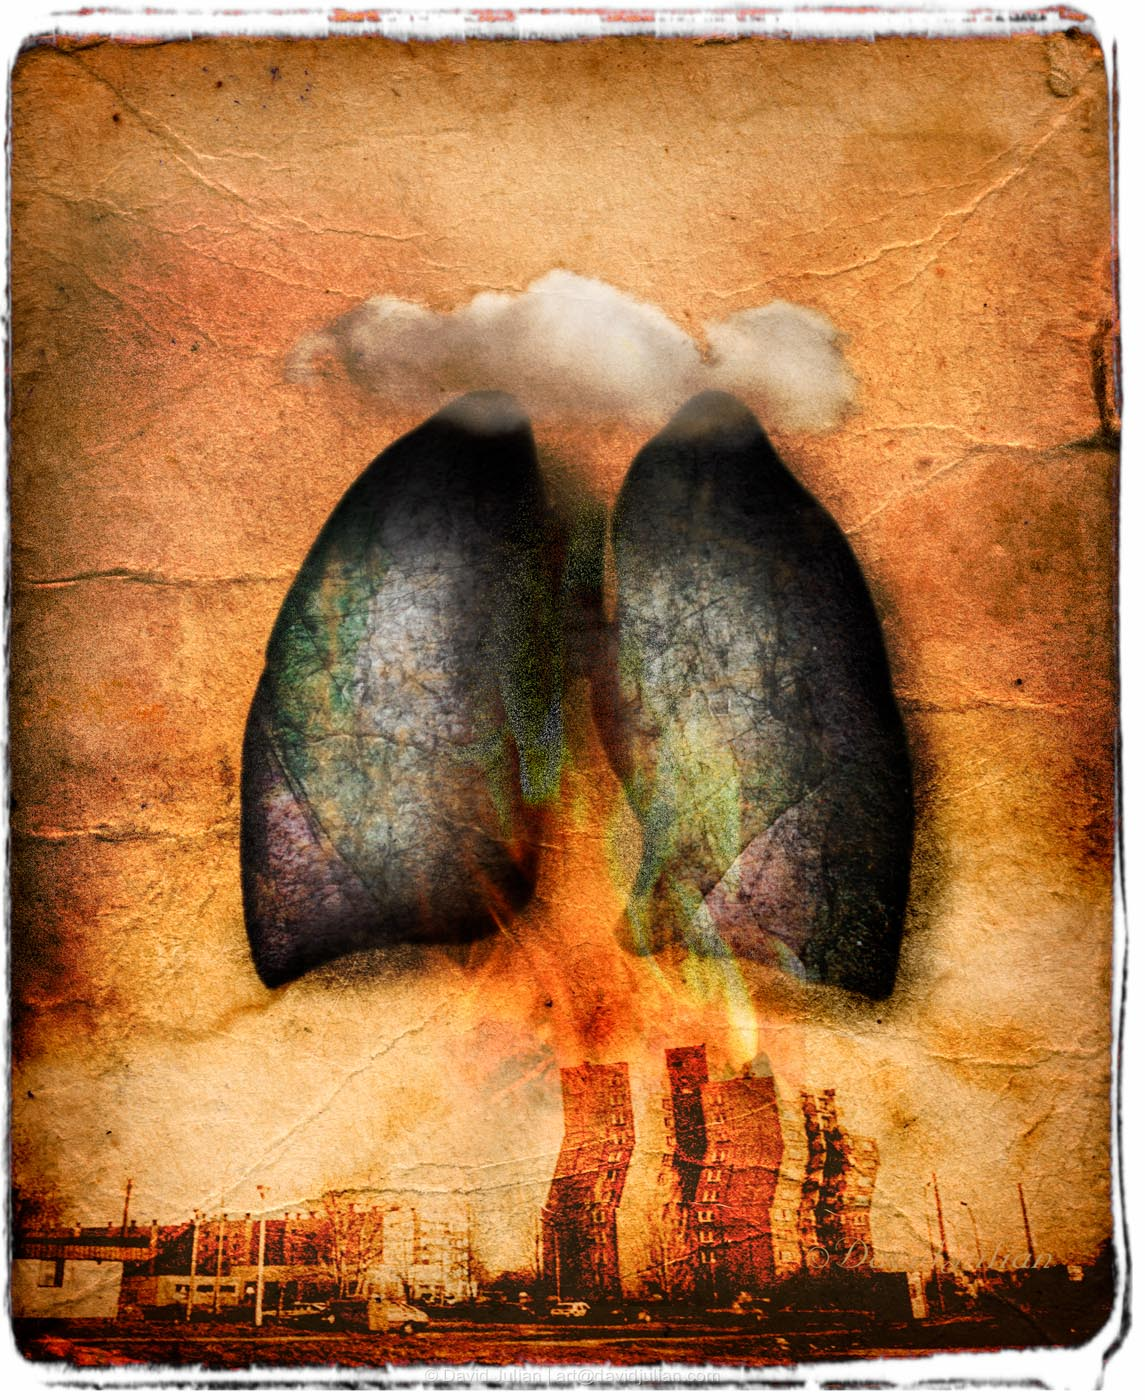 lungs_enviro_damage.jpg